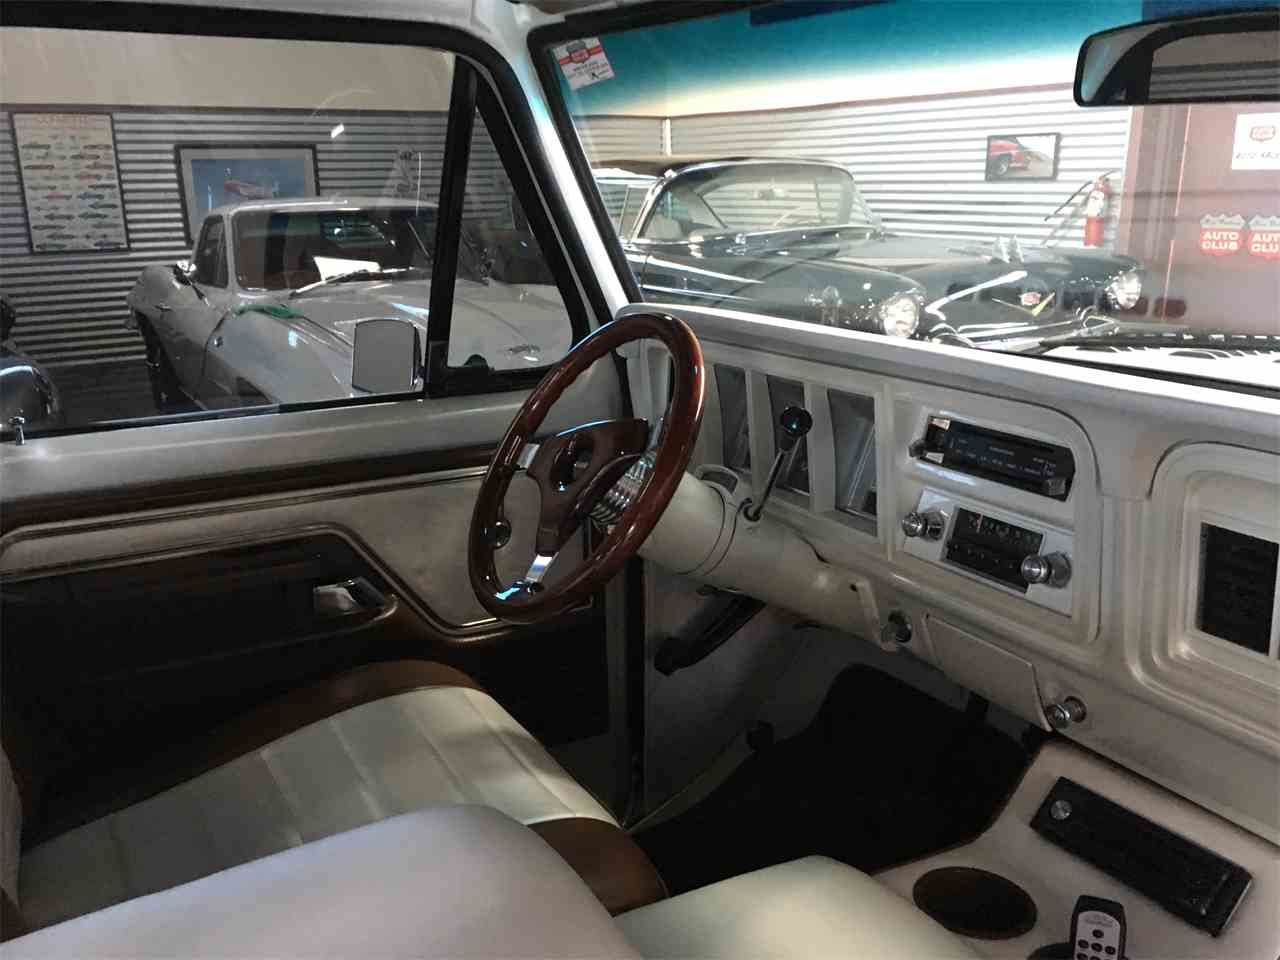 Large Photo Of 79 F150 Kpxm 1979 Ford F150 Ford F150 F150